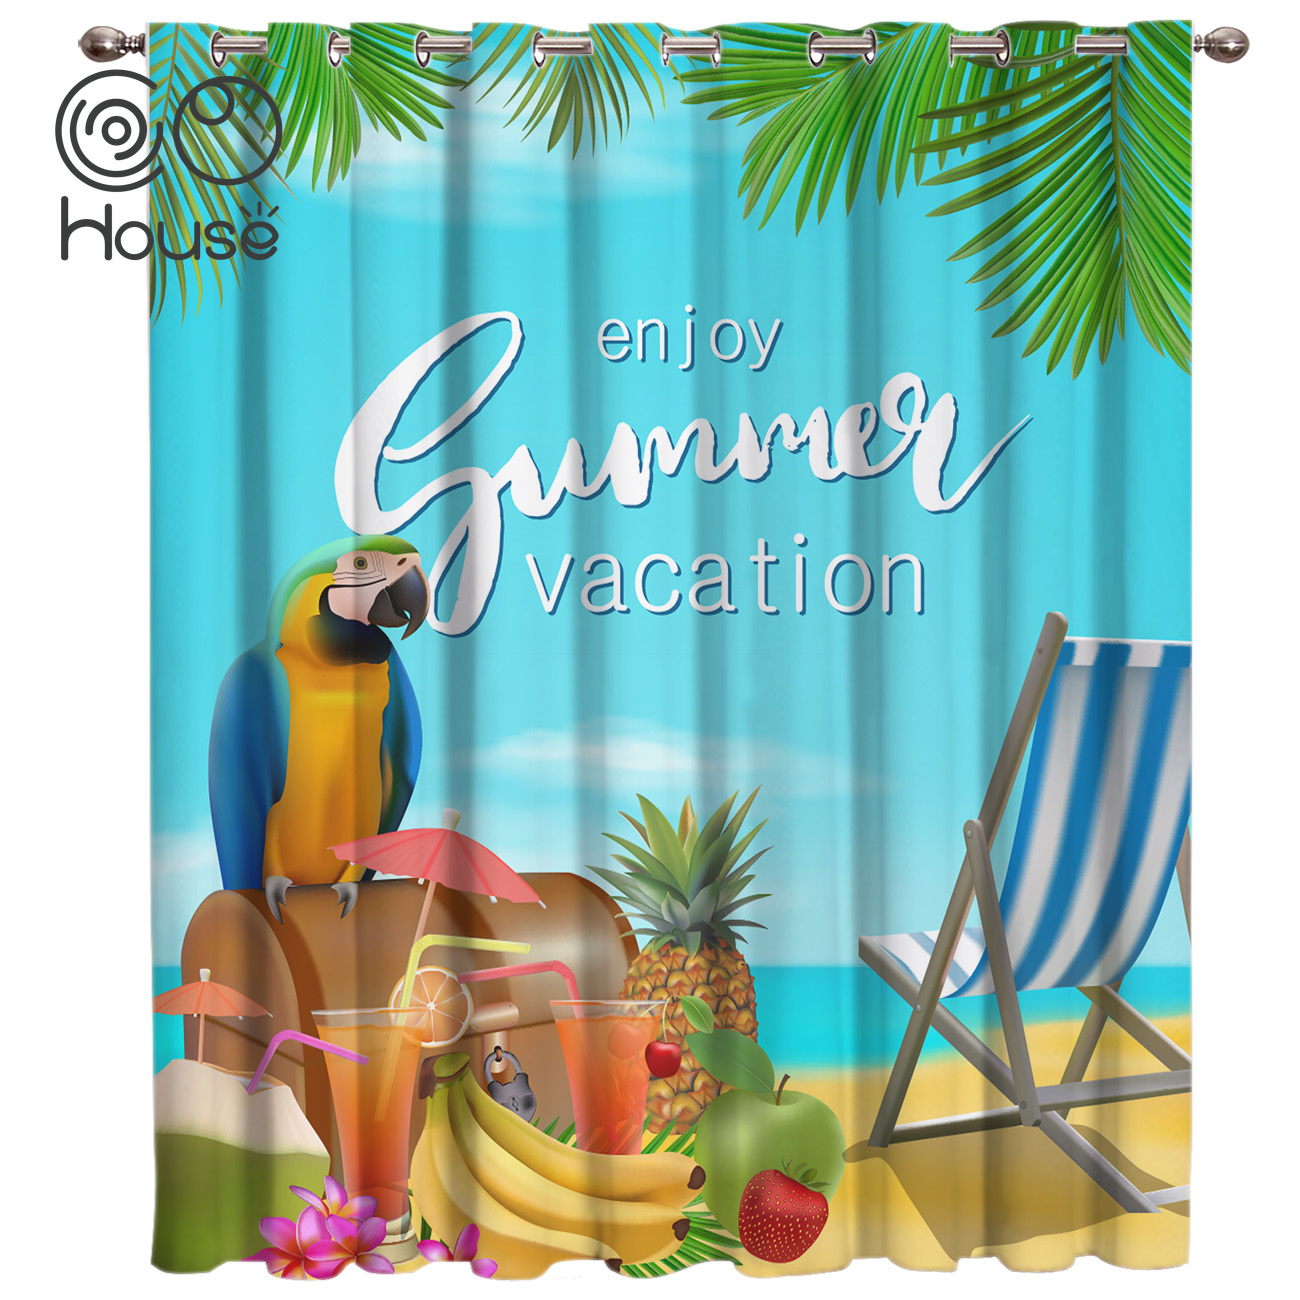 COCOHouse Beach Parrot Enjoy Summer Vacation Window Treatments Curtains Valance Window Curtains Dark Curtains Bedroom Indoor